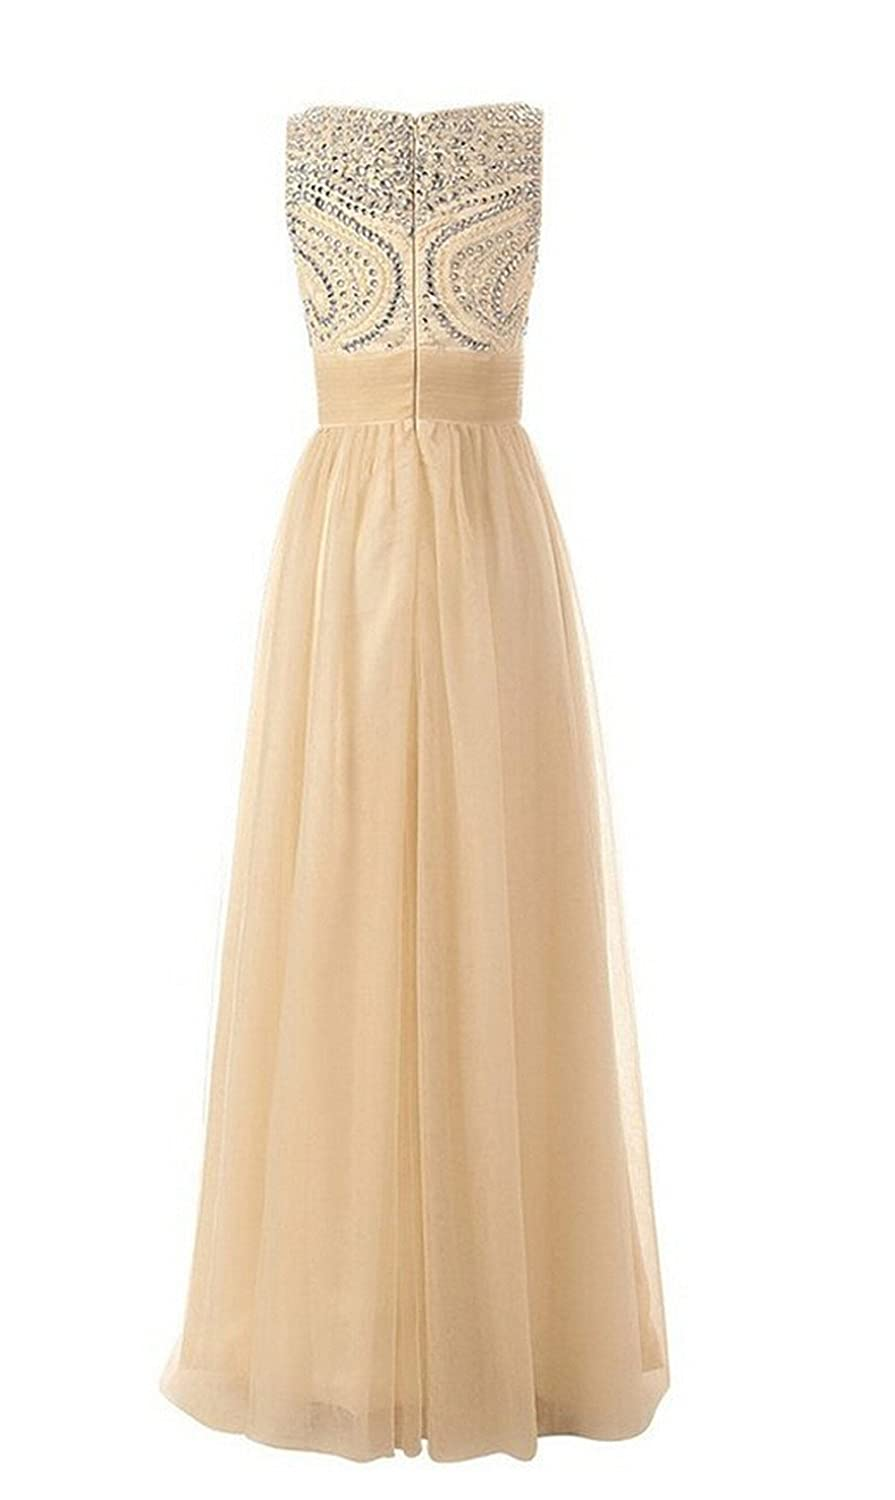 AngelDragon O-Neck Beaded Long Prom Dresses Formal Evening Gowns